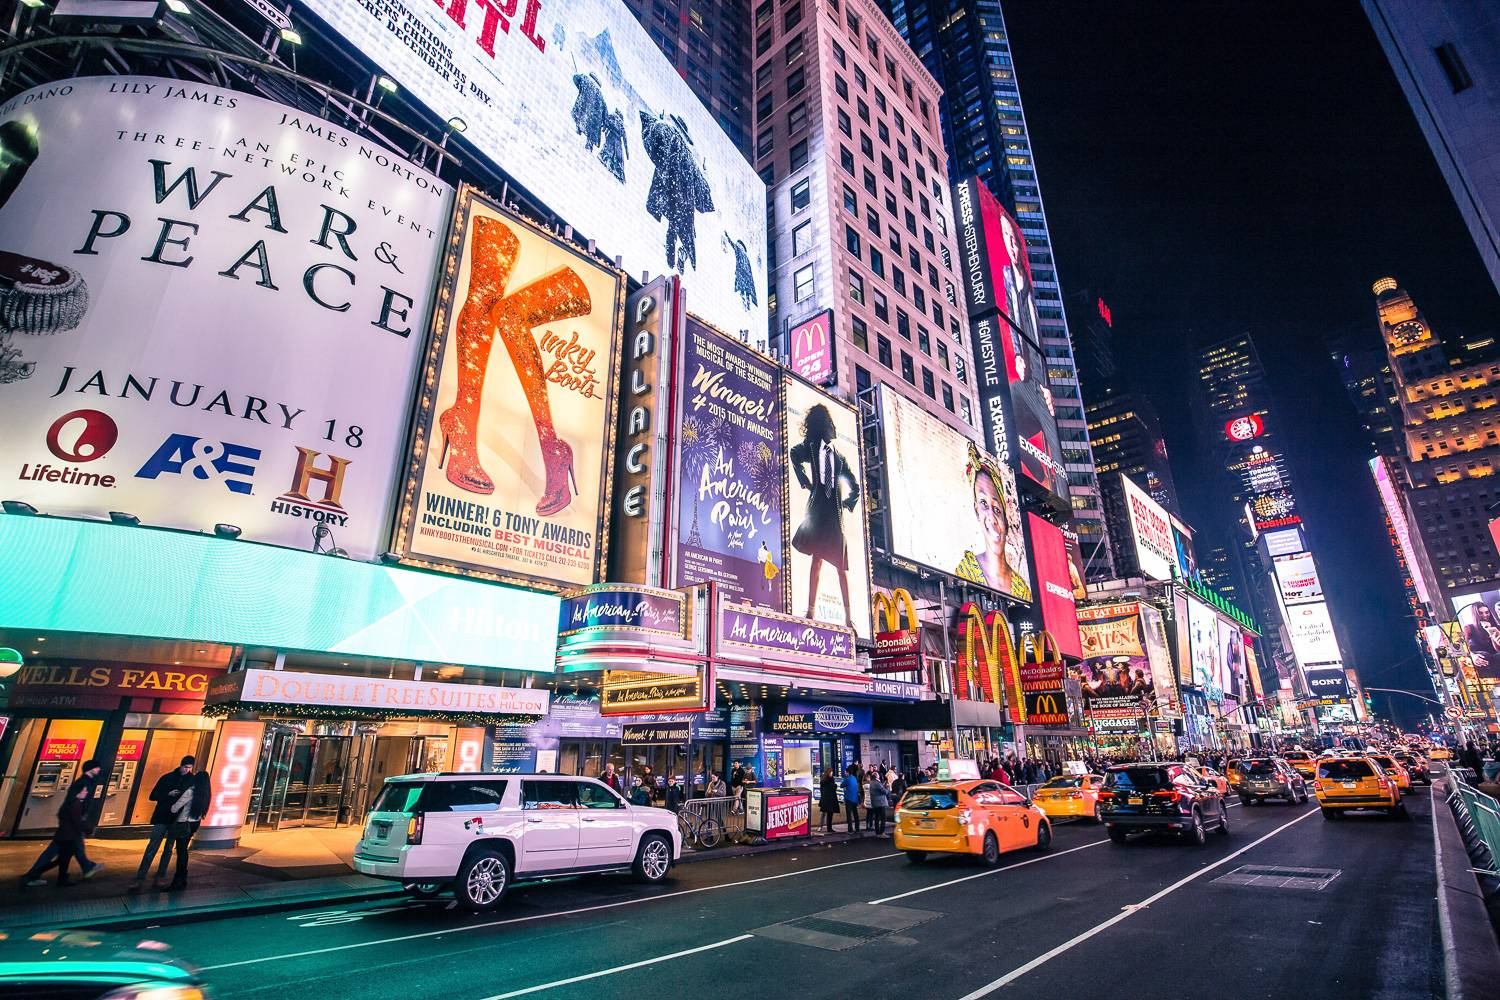 Image of Broadway billboard signs with neon lights (Photo Credit: Unsplash)